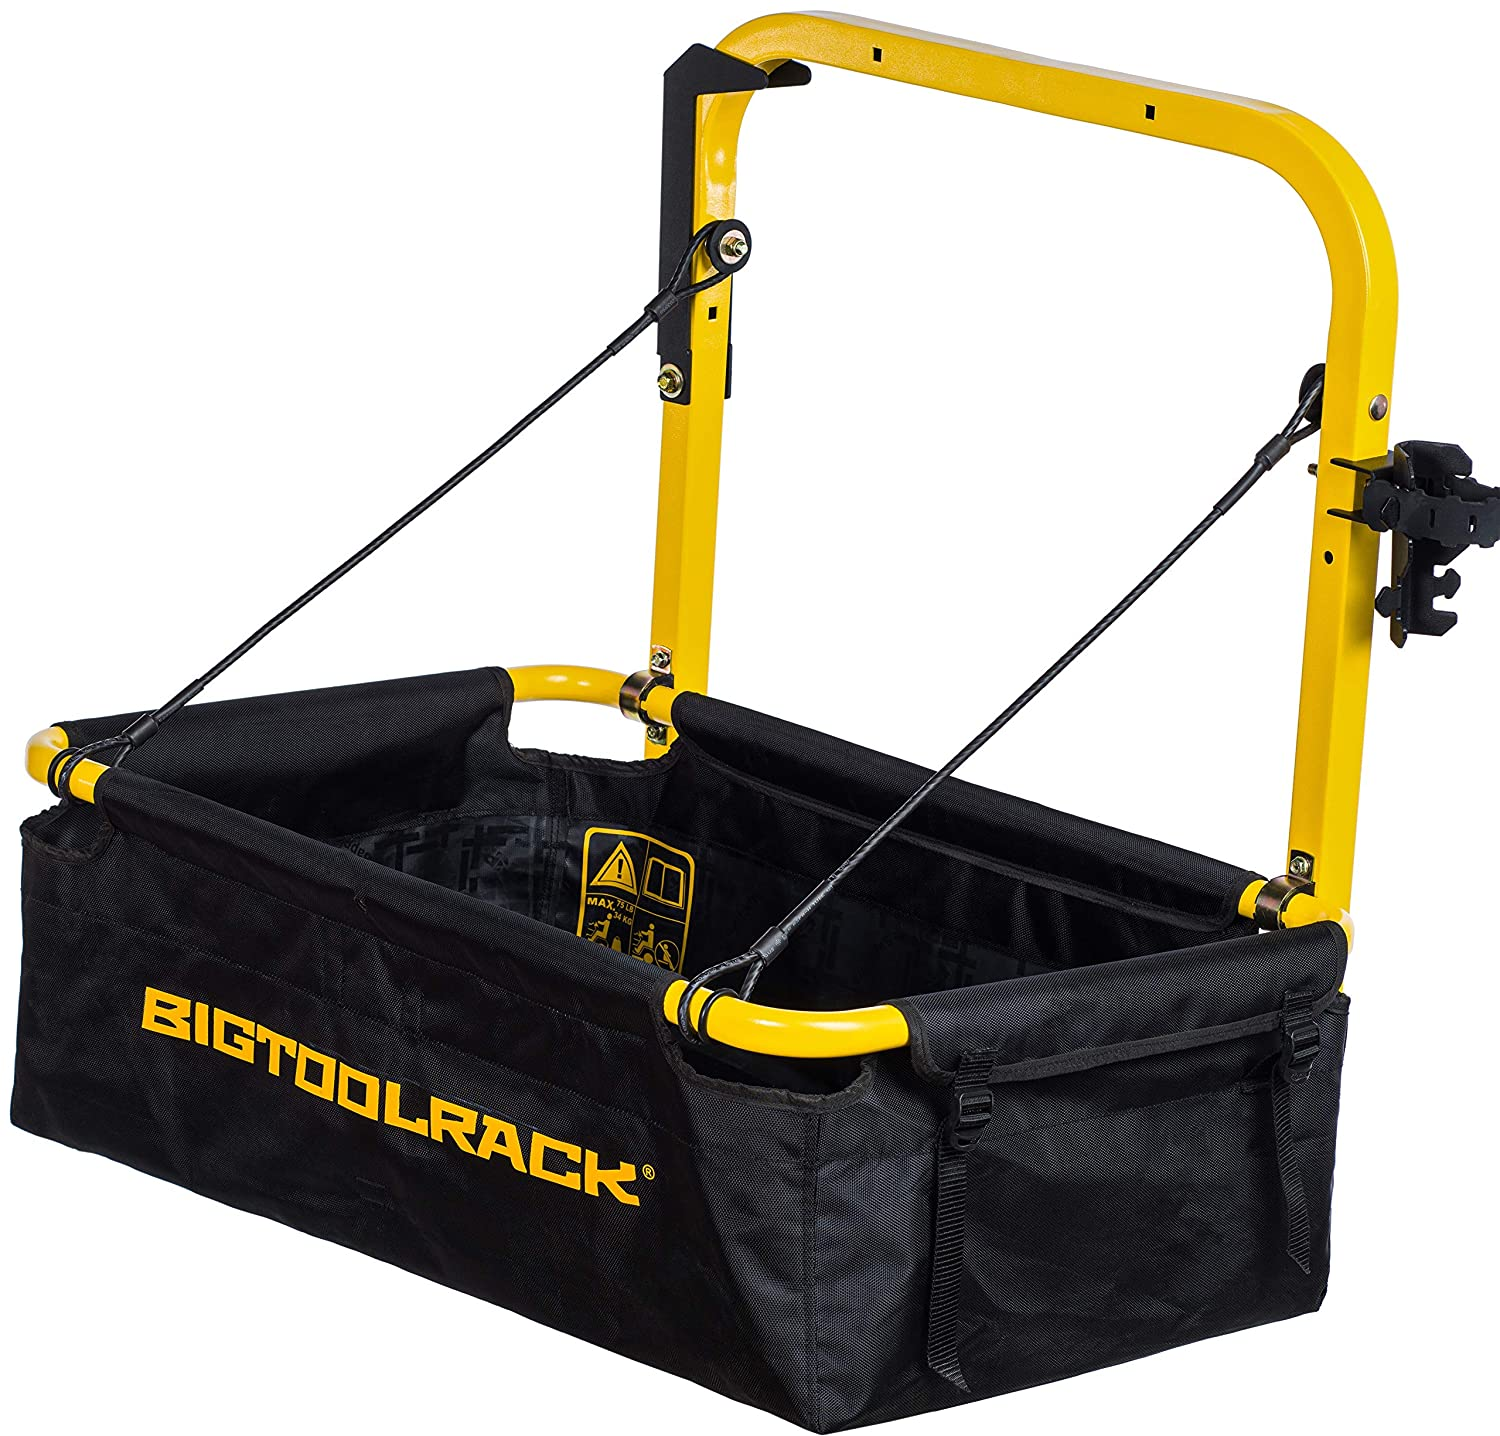 Bigtoolrack YardRack for Riding Mowers and Lawn Tractors, Dropdown Trailer to Haul More Gear